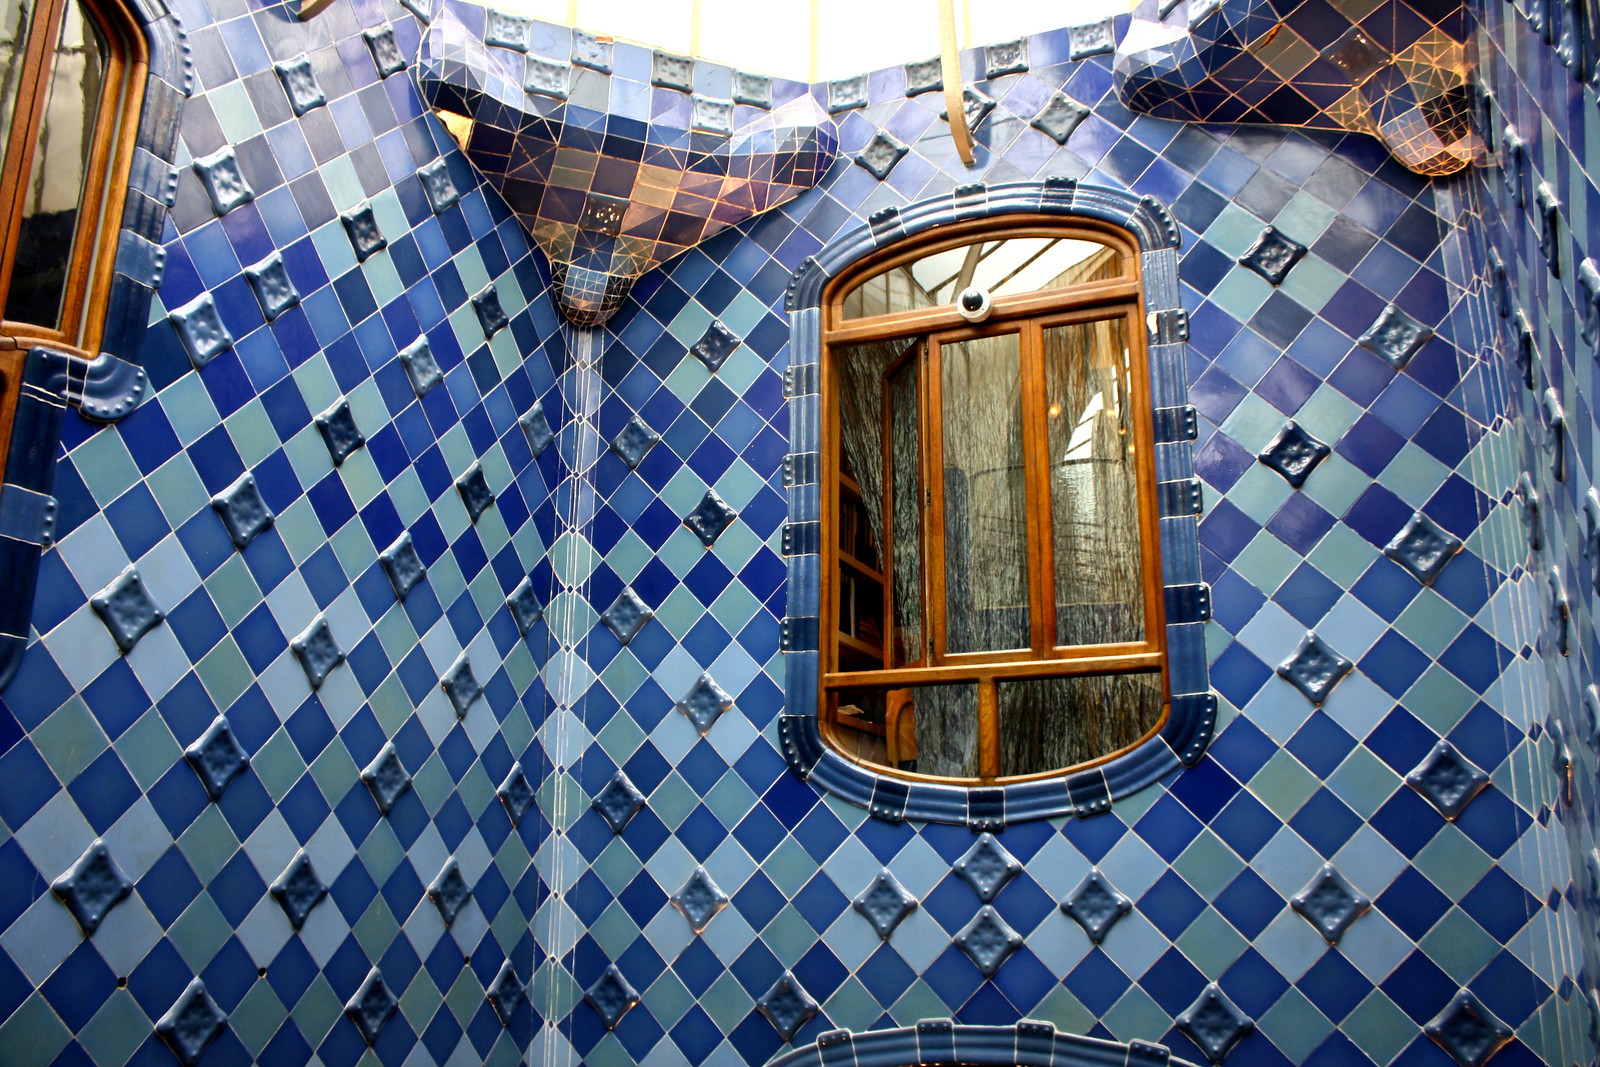 Casa Batlló by Antoni Gaudí in Barcelona, Spain